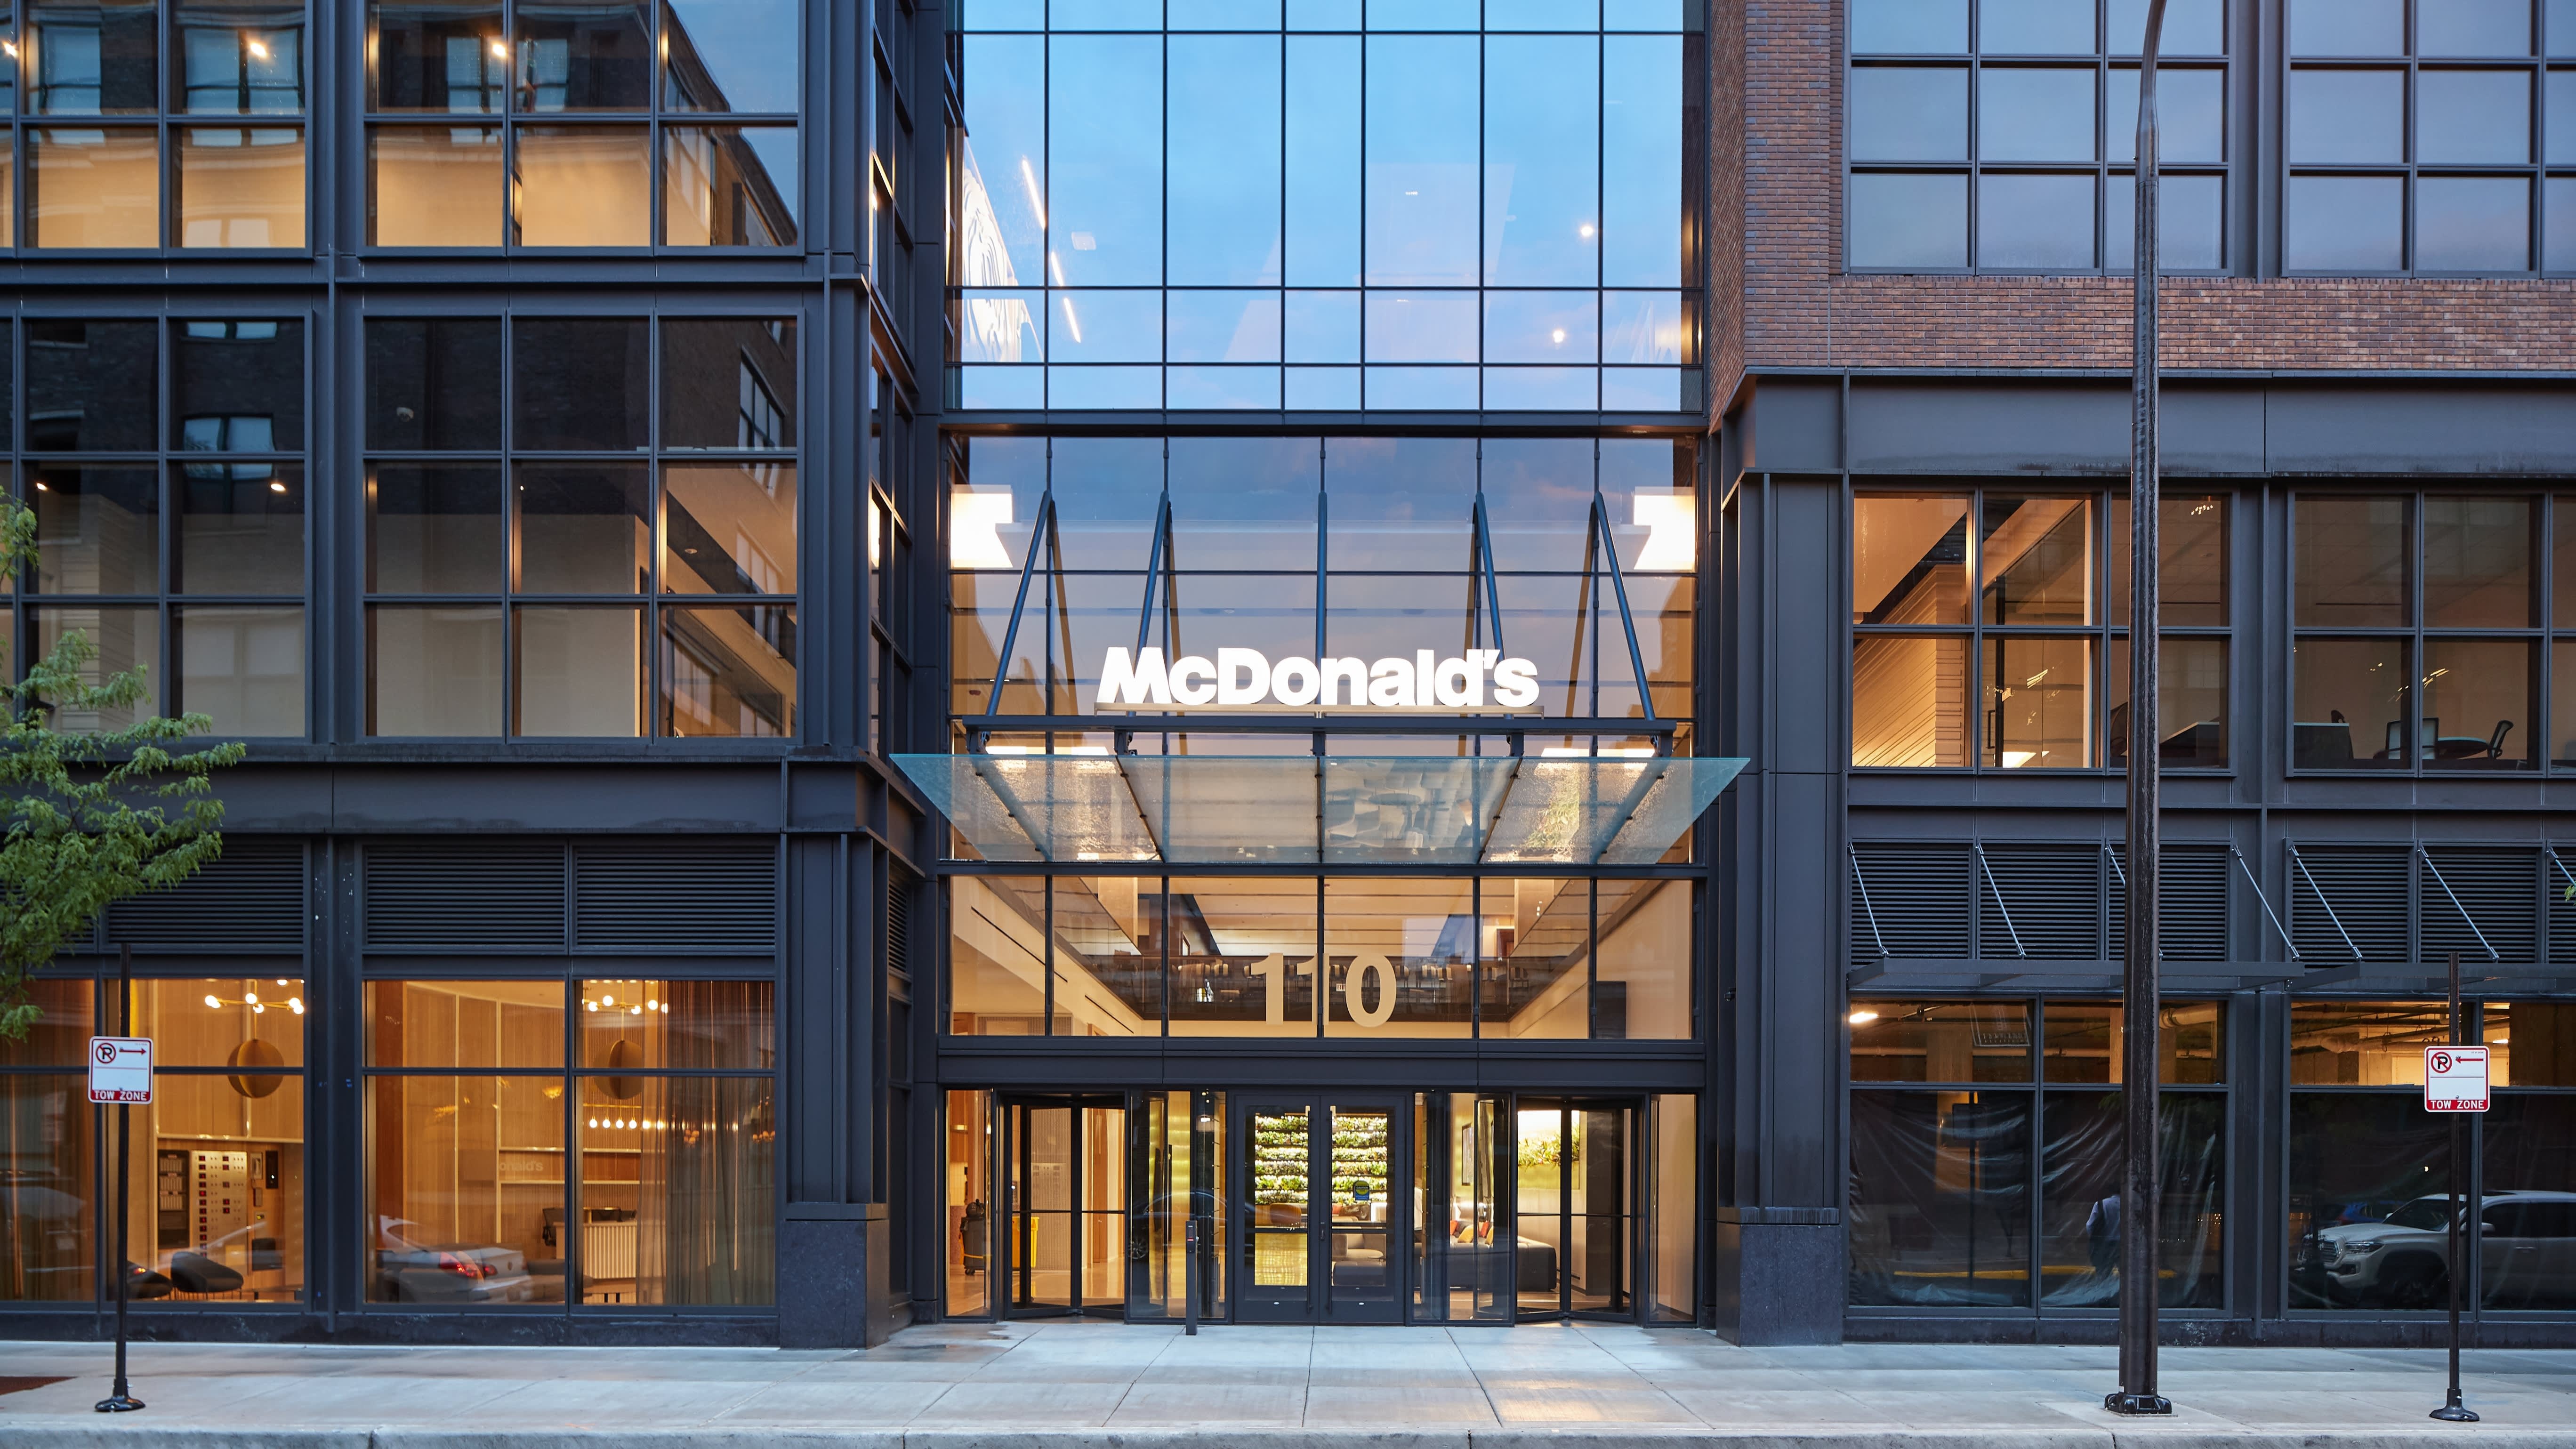 McDonald's opens new $250 million headquarters  Here's what